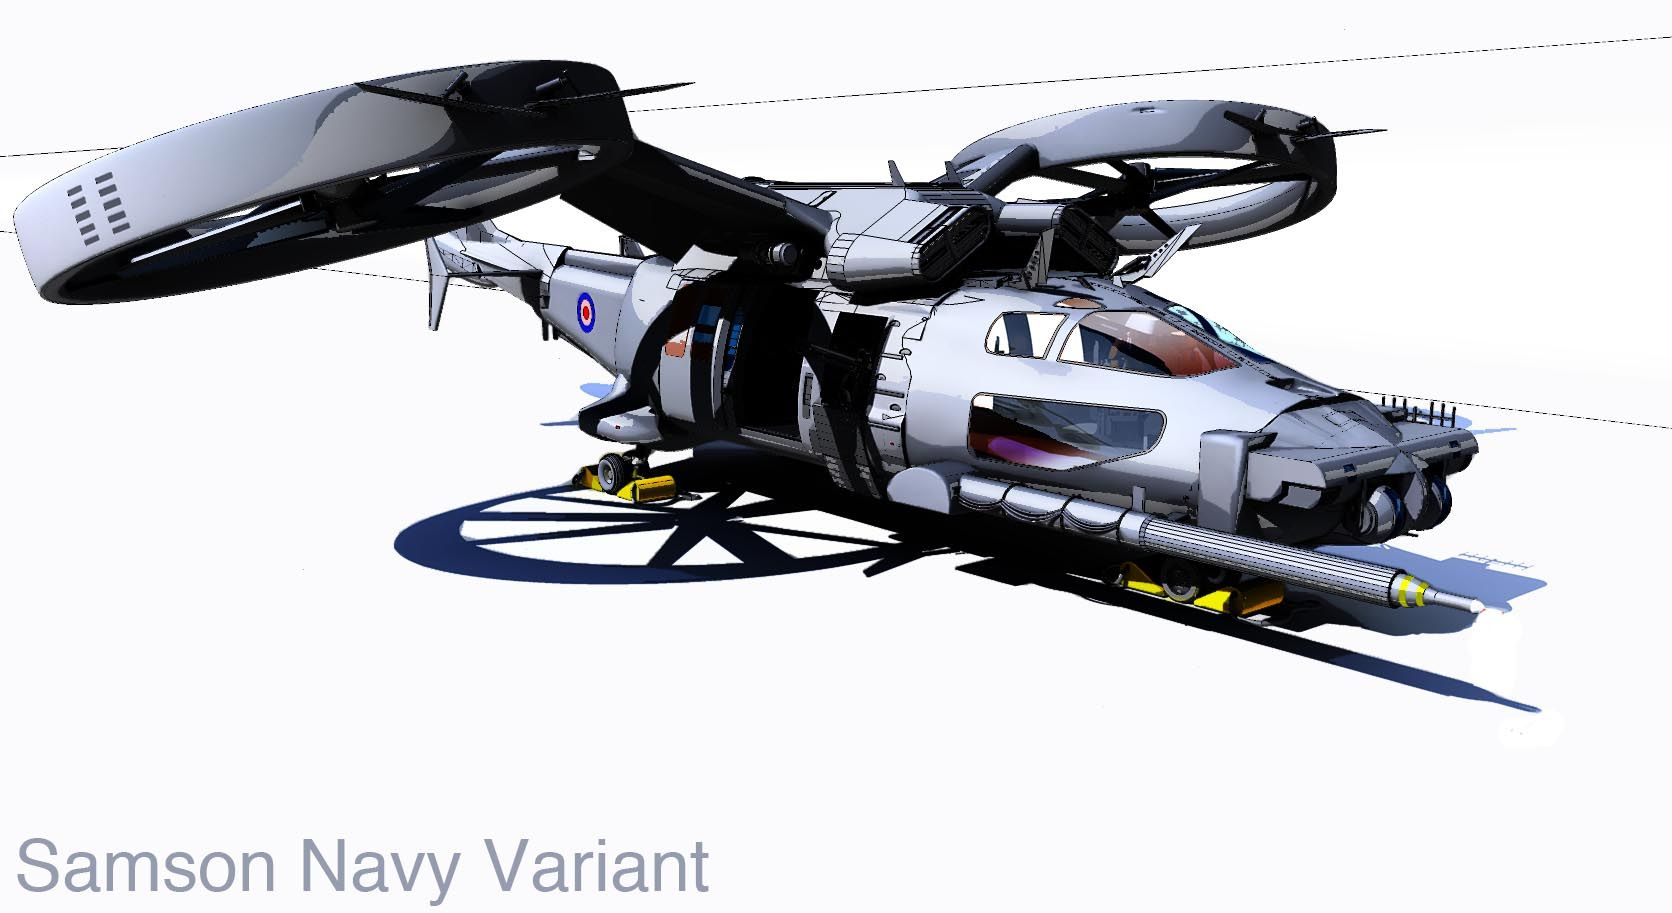 avatar movie helicopter Avatar Movie Aircraft Concept